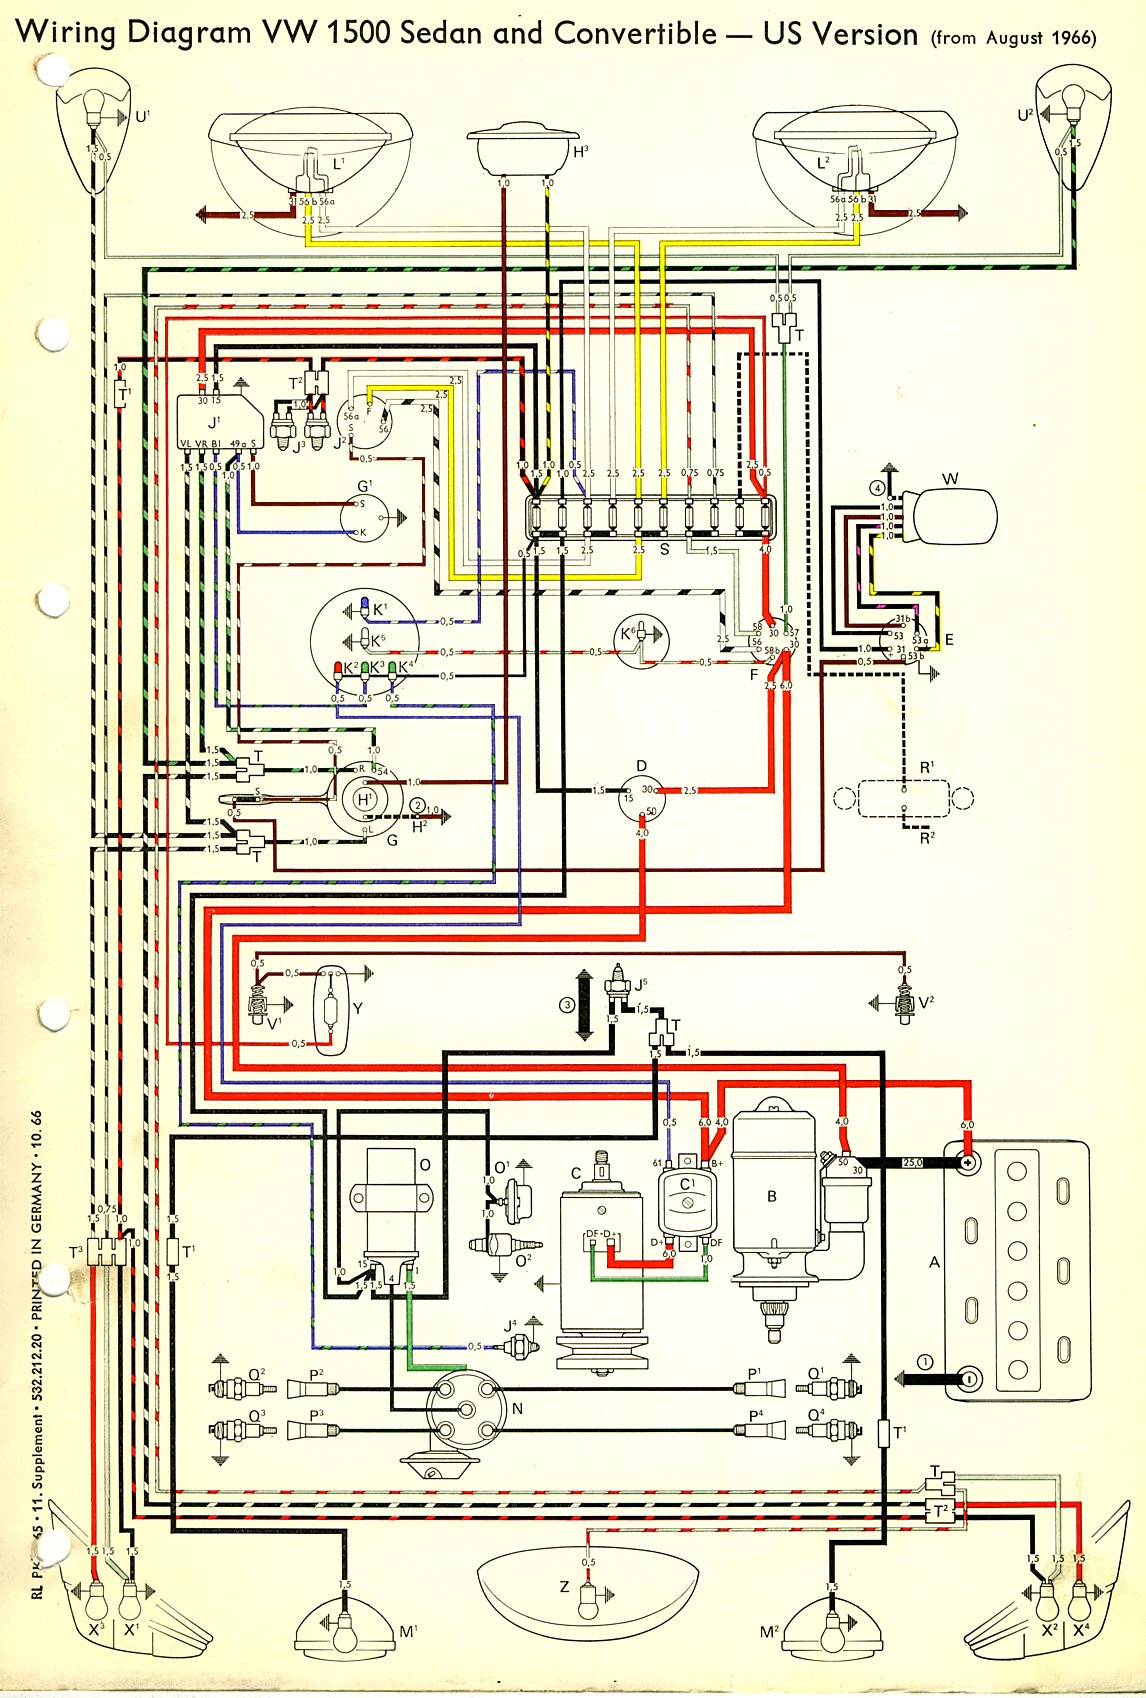 Maxresdefault in addition Pontiac Firebird furthermore Ghia Us Dpi as well Vw Golf Fuses Relays likewise Maxresdefault. on 2000 vw beetle fuse diagram